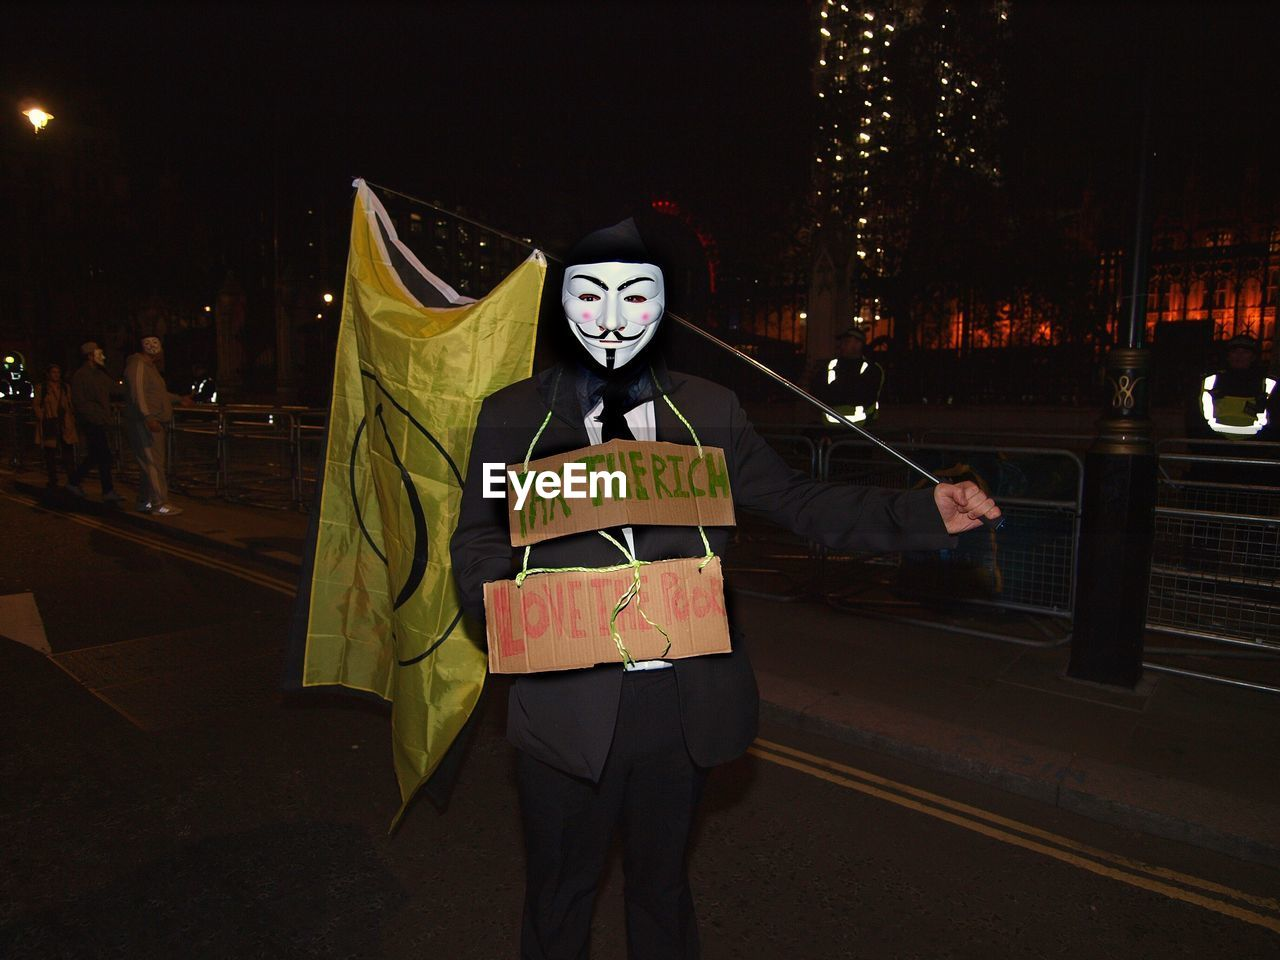 night, costume, mask - disguise, front view, illuminated, disguise, real people, outdoors, one person, men, spooky, standing, protestor, clown, people